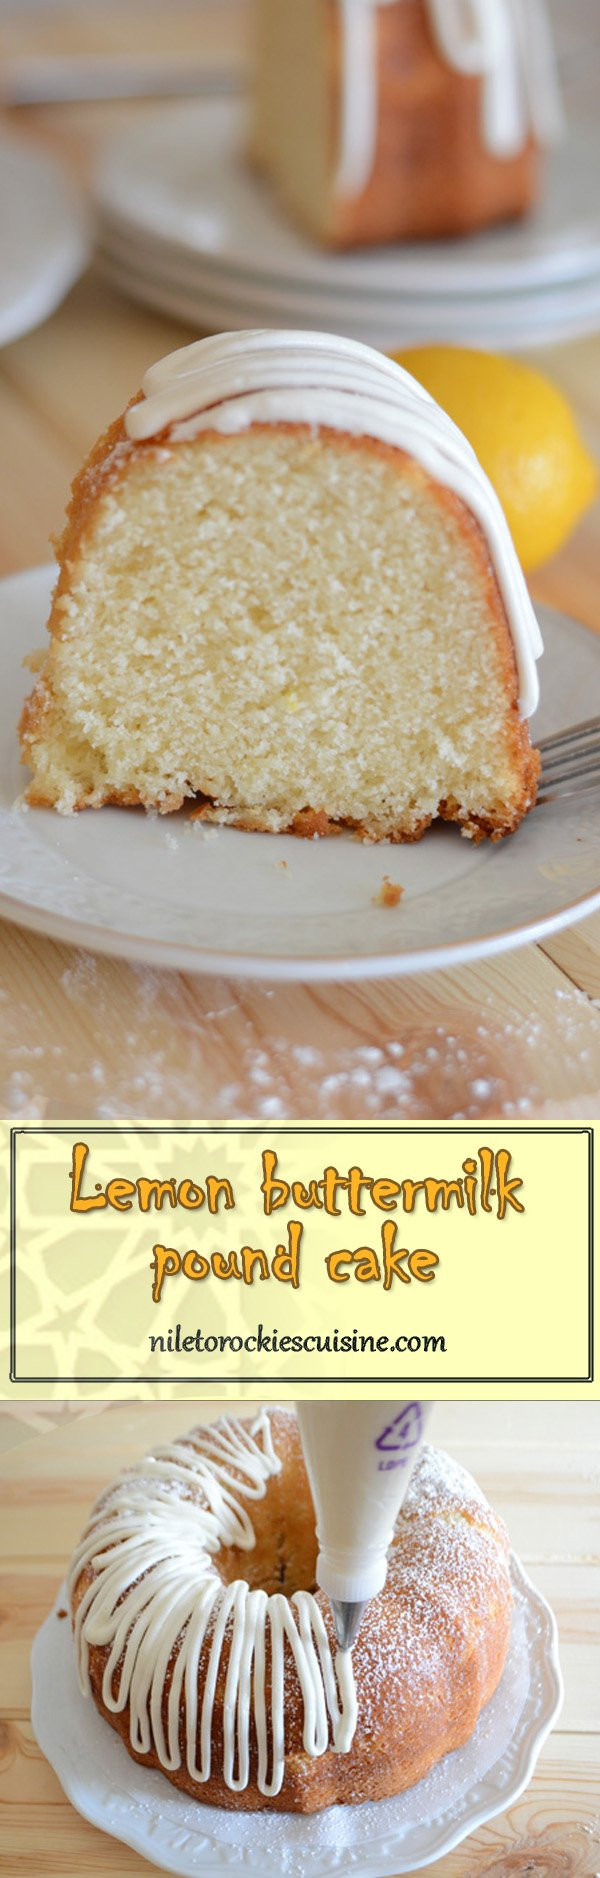 A pretty classic lemon pound cake that has a delicate and pleasant fresh lemon flavor with a dense, moist crumb.